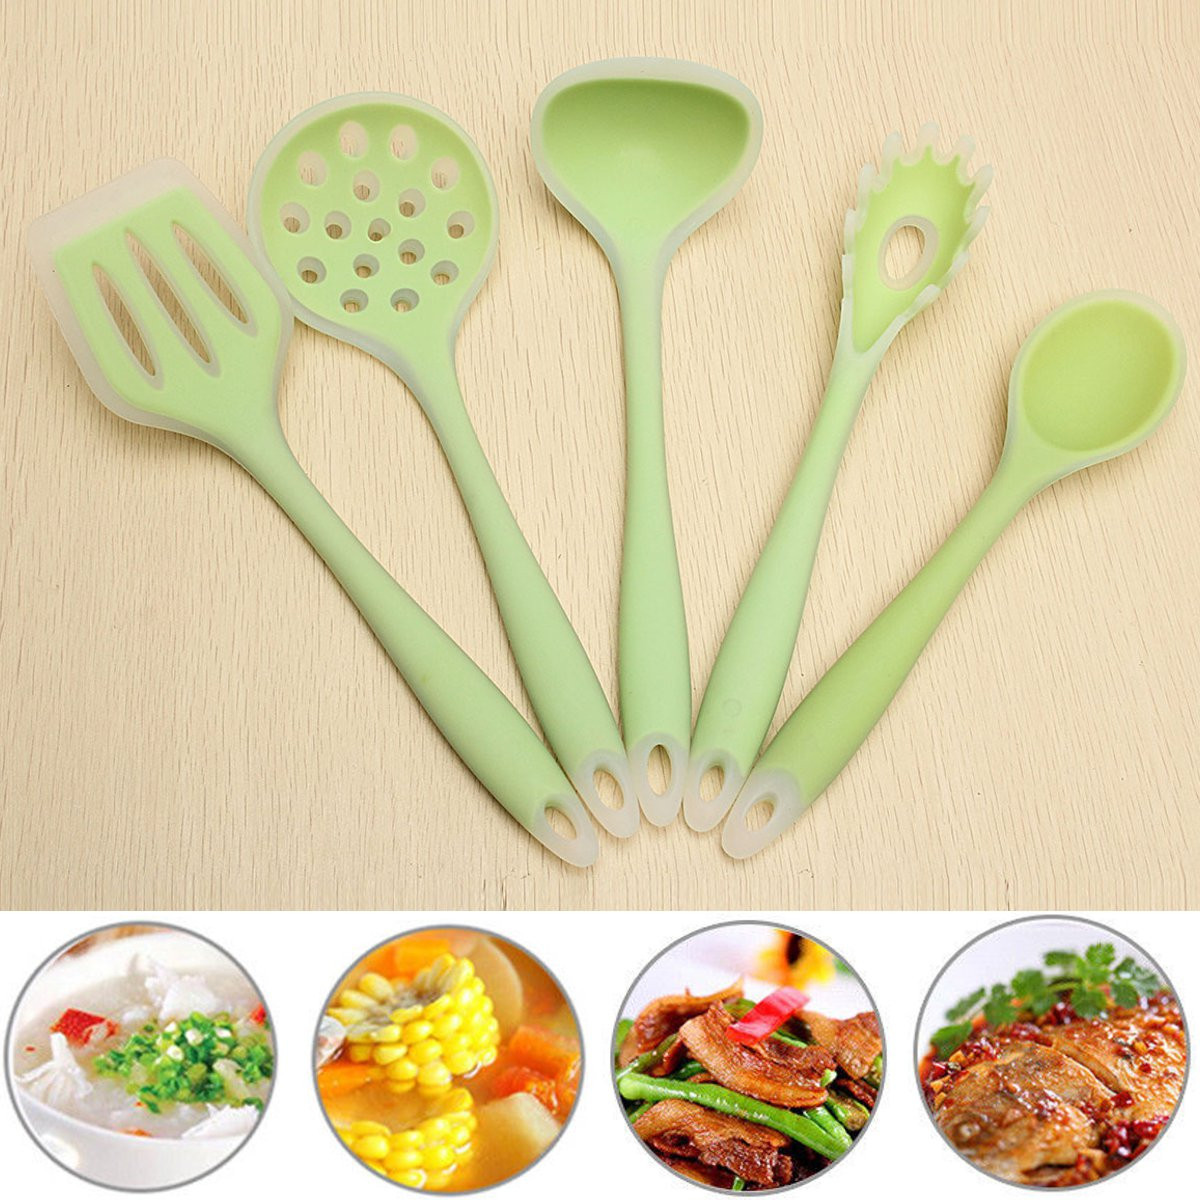 5Pcs Silicone Cooking Utensil Set Set Kitchen Cooking Tools Spoon Spatula Ladle by